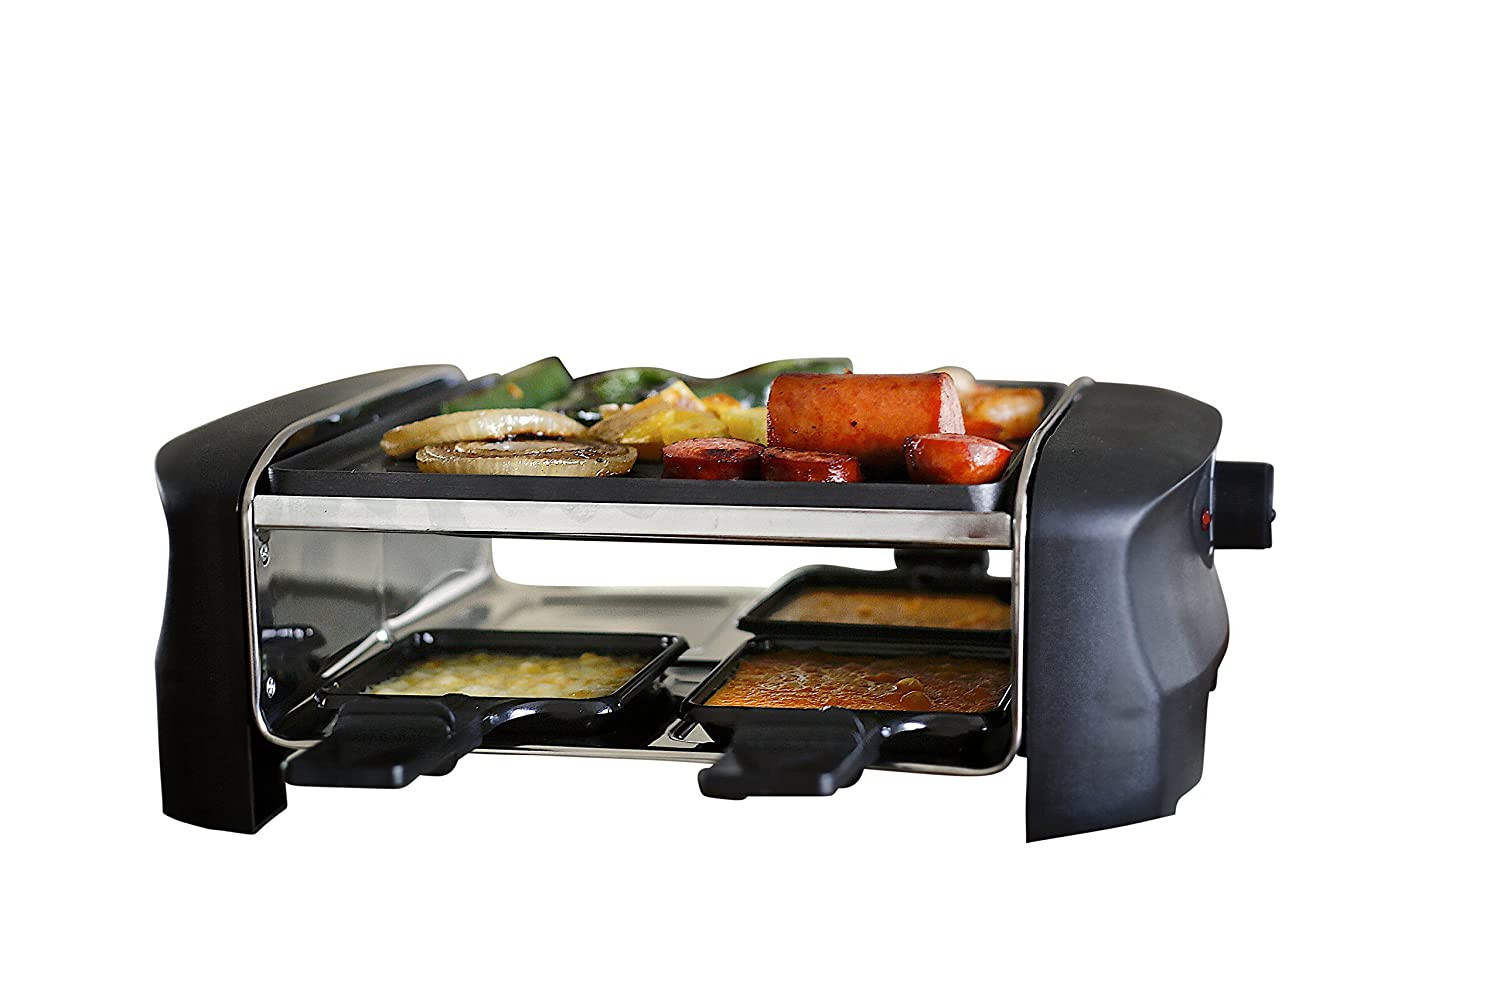 Milliard Raclette Grill for Four People, Includes Reversible Non-Stick Grilling Surface, 4 Paddles and Spatulas - Great for a Family Get Together or Party